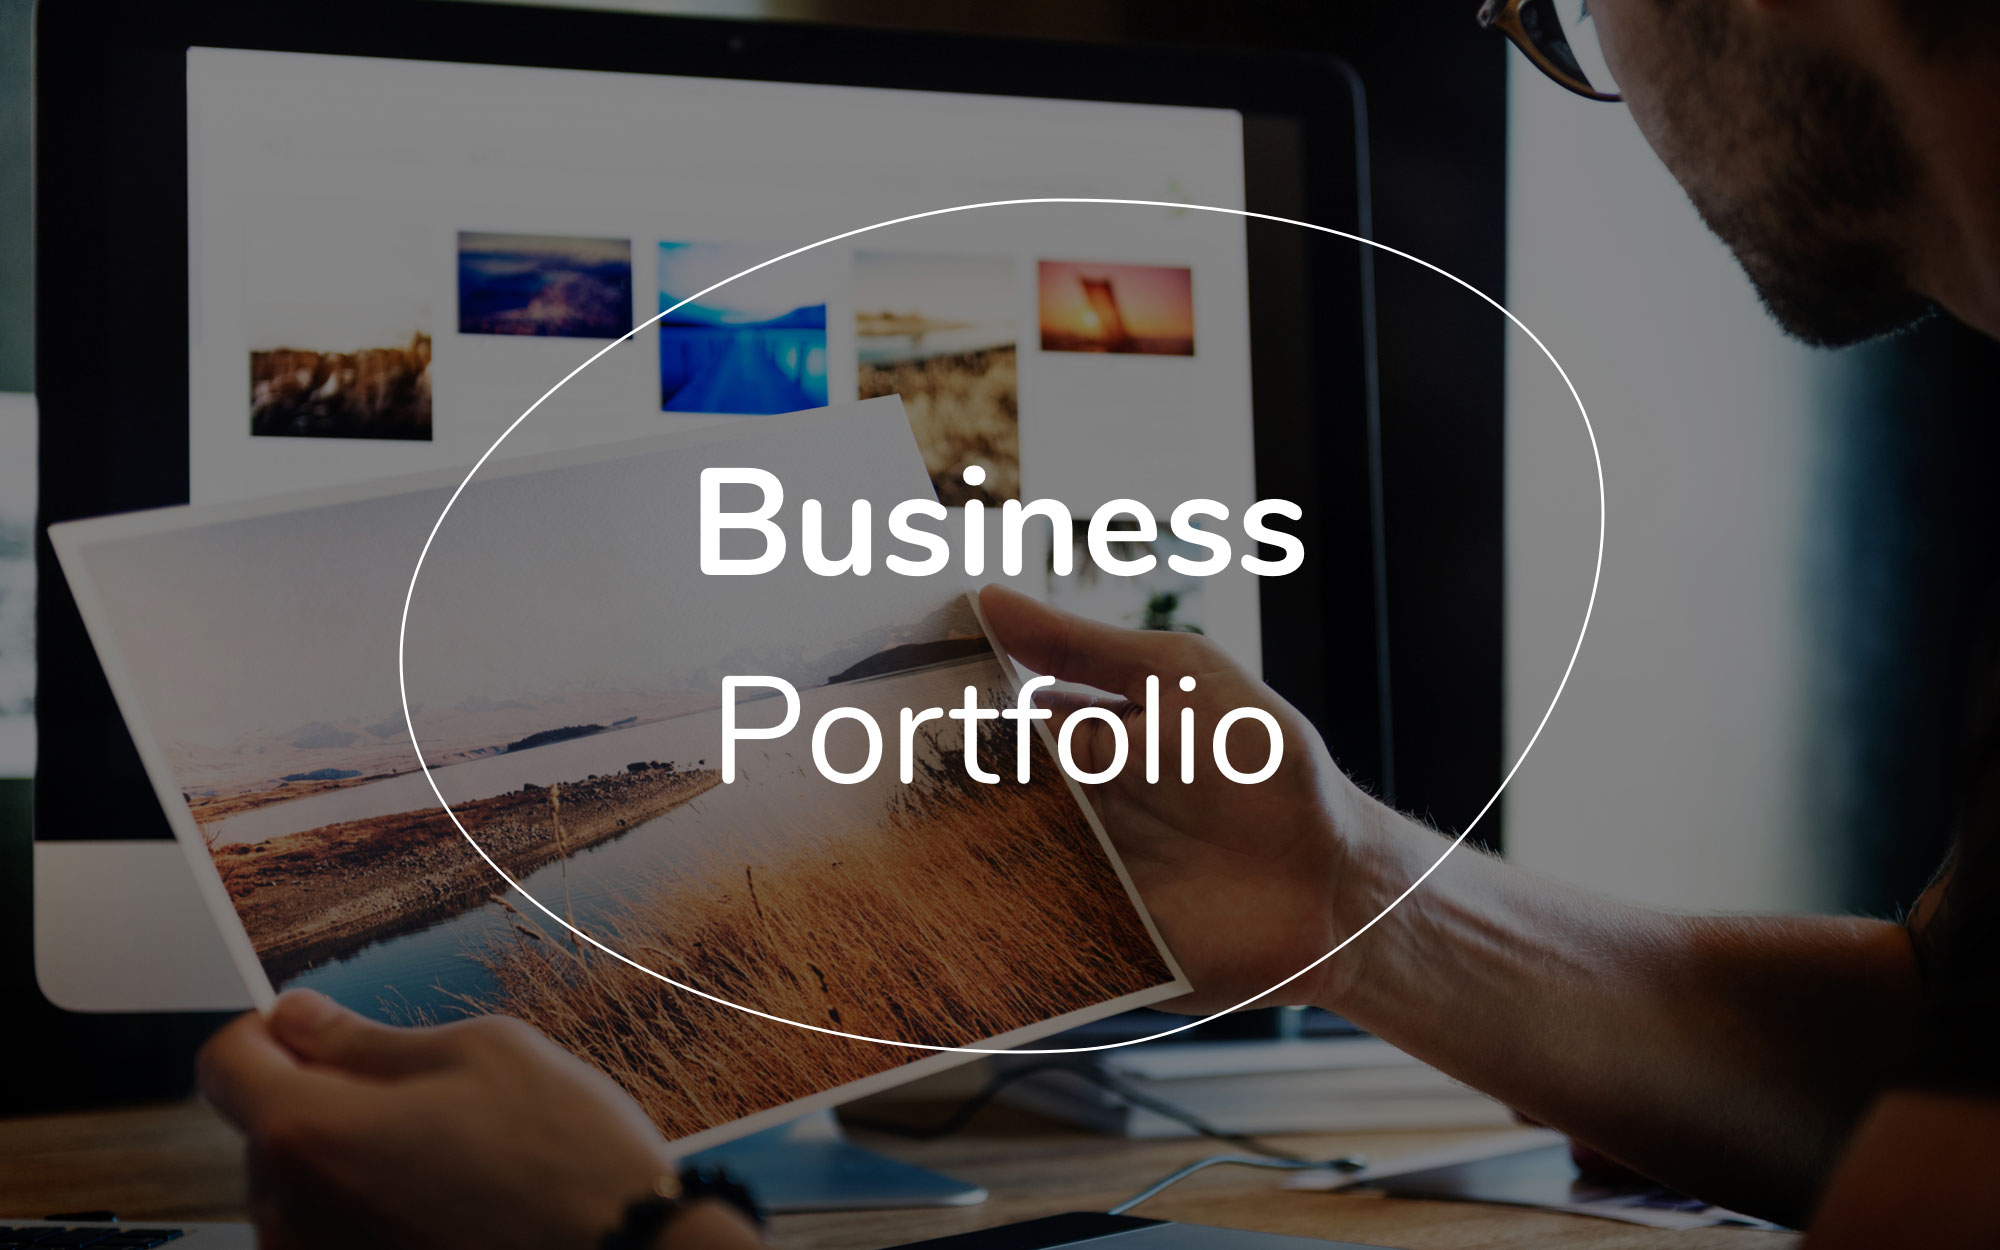 Business portfolio template free pdf ppt download slidebean business portfolio template free pdf ppt download wajeb Choice Image